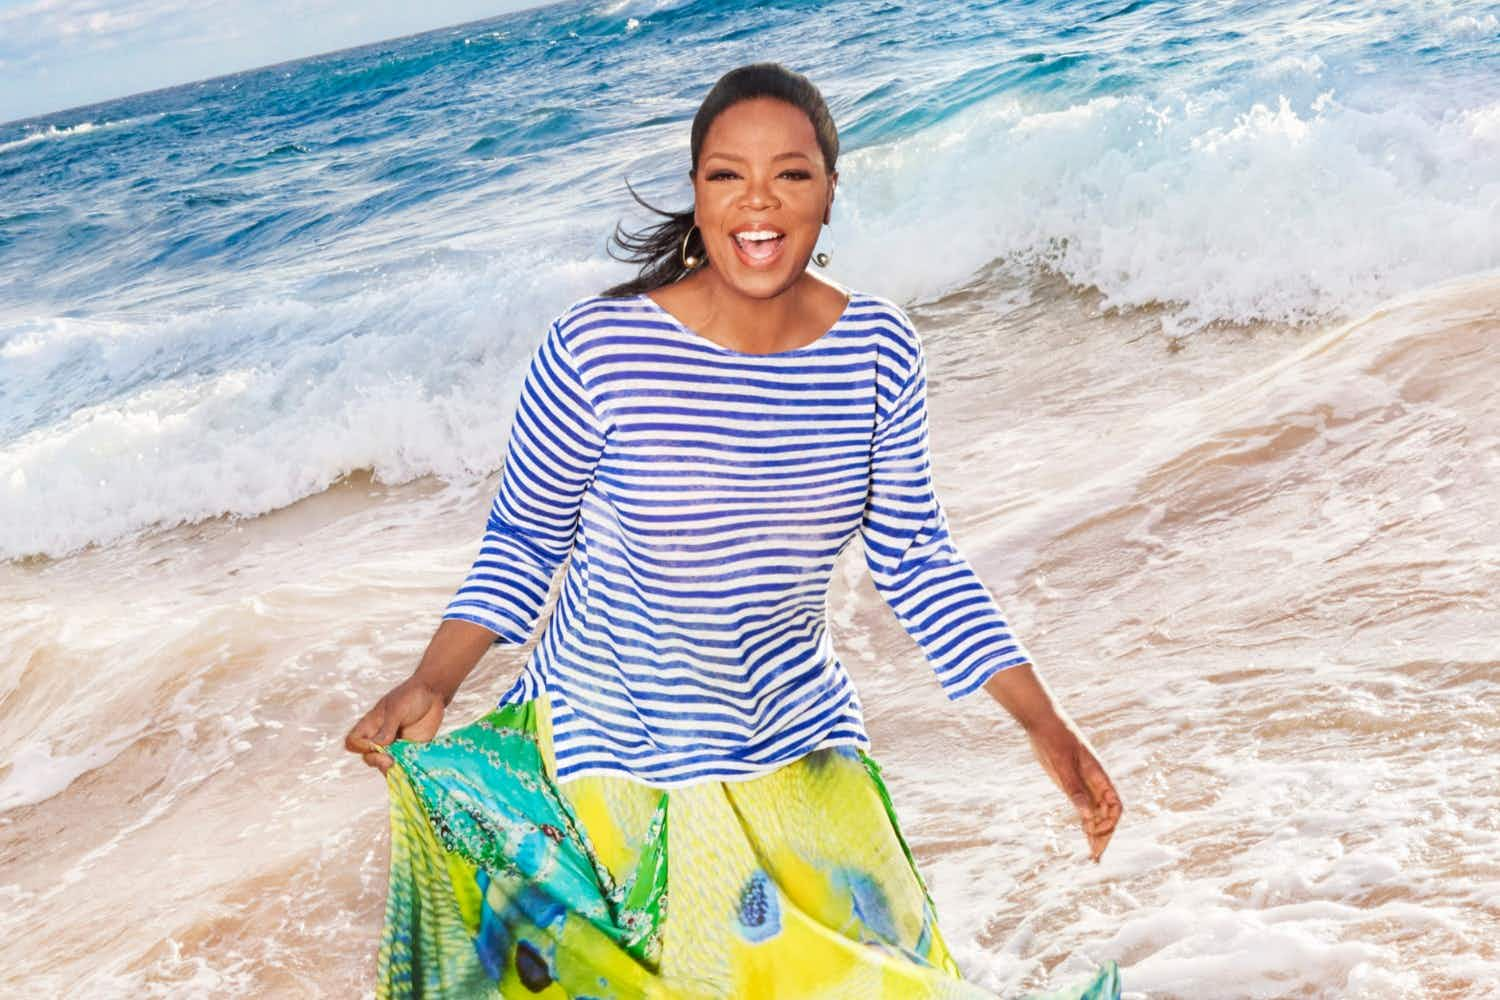 Set sail on an inspirational women's cruise with Oprah